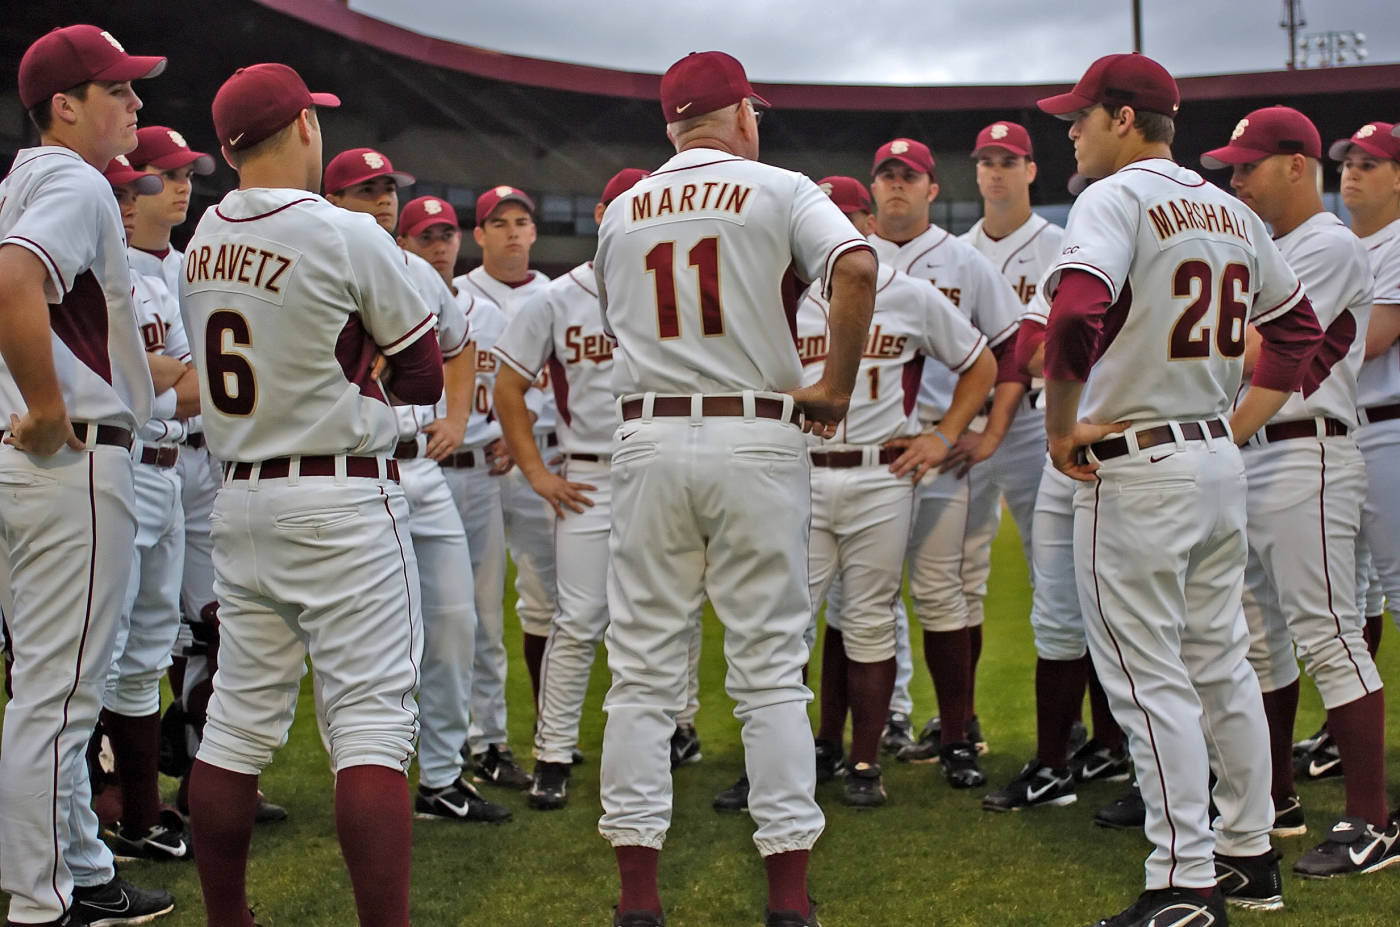 Head coach Mike Martin huddles with the team